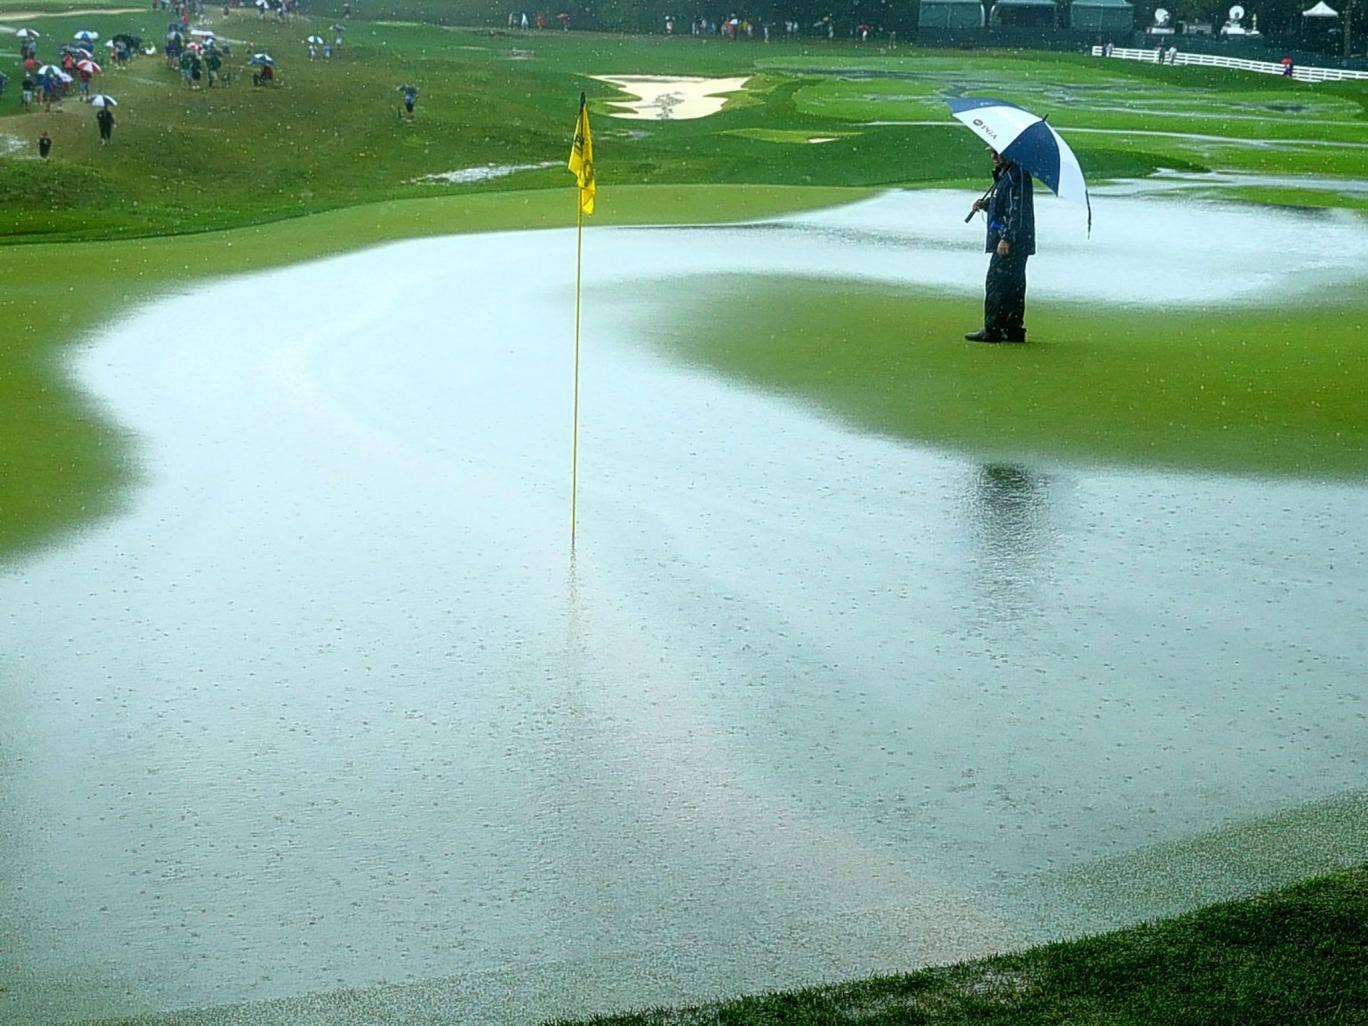 The heavily waterlogged ninth hole during today's downpour at Valhalla